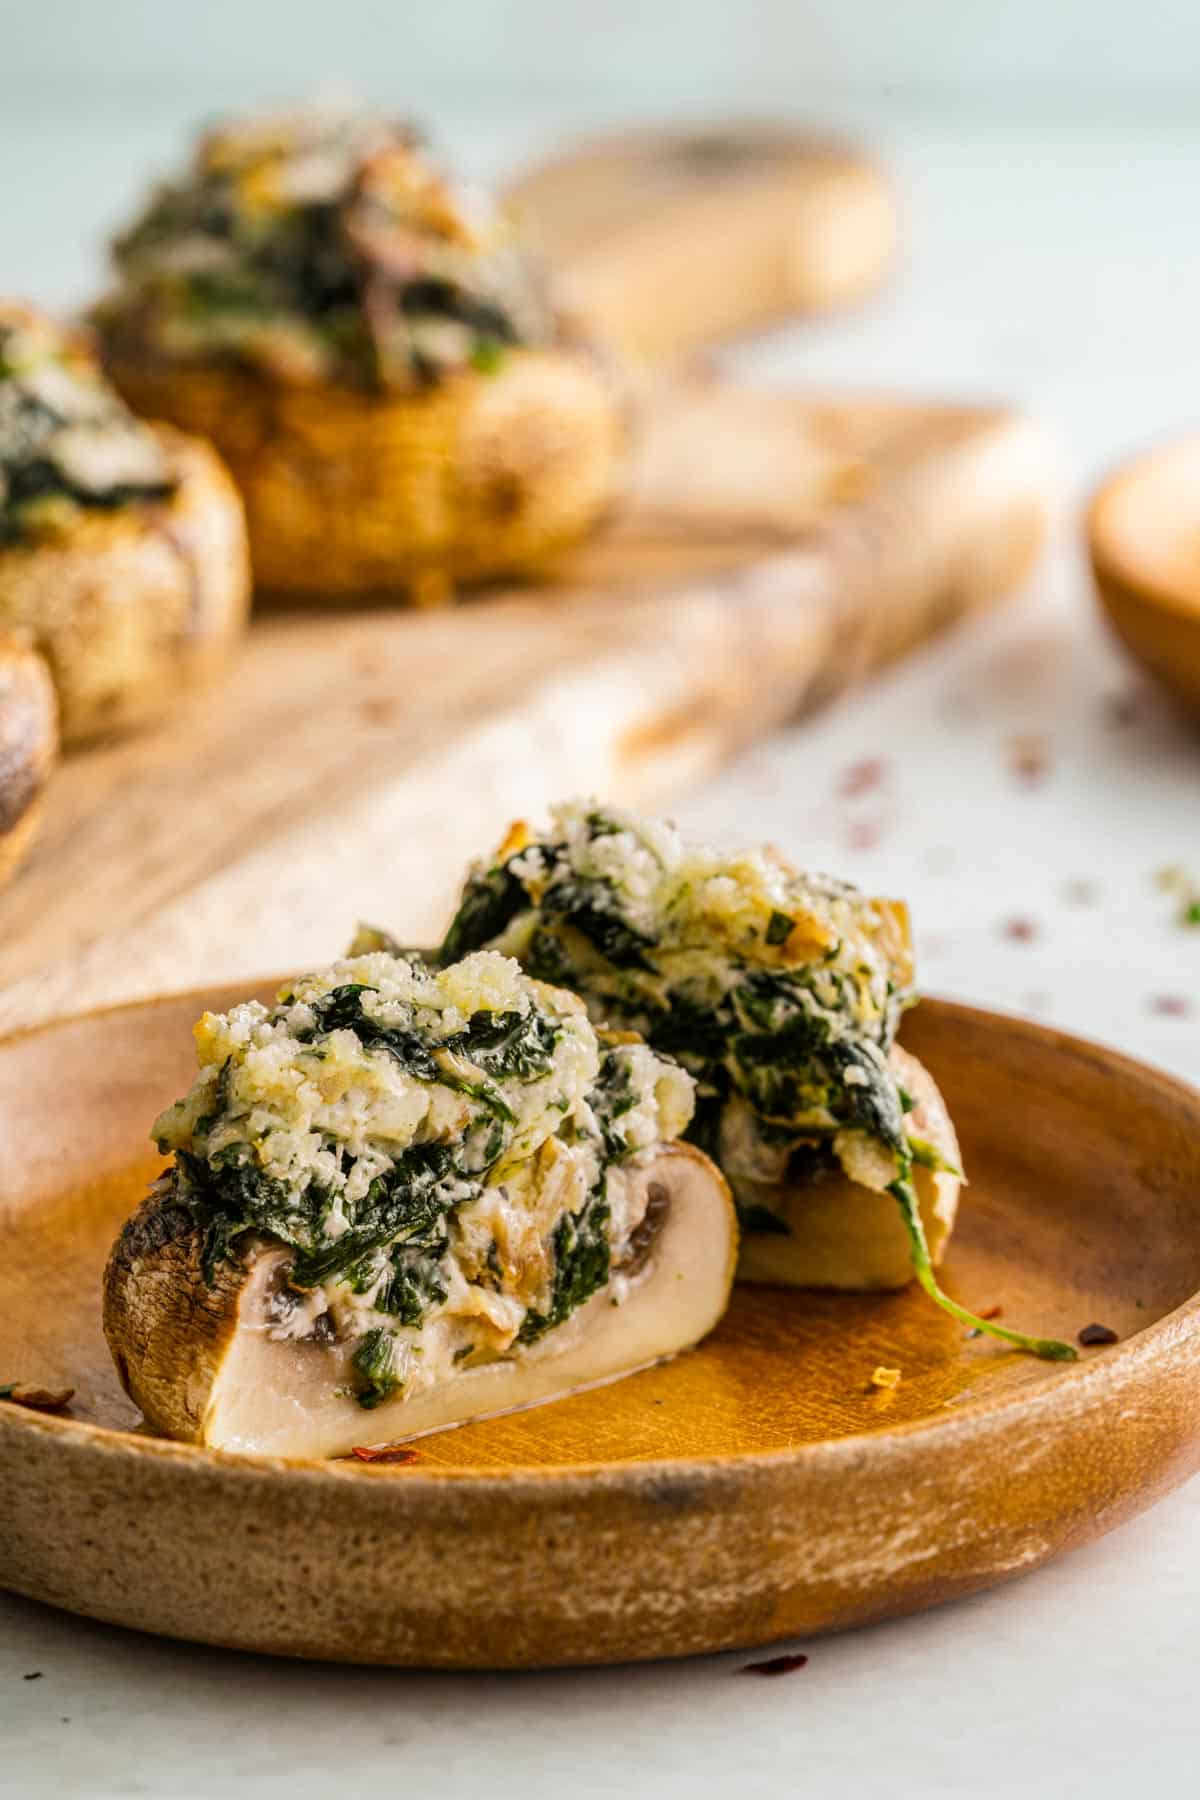 mushroom cut open revealing creamed spinach and parmesan cheese inside